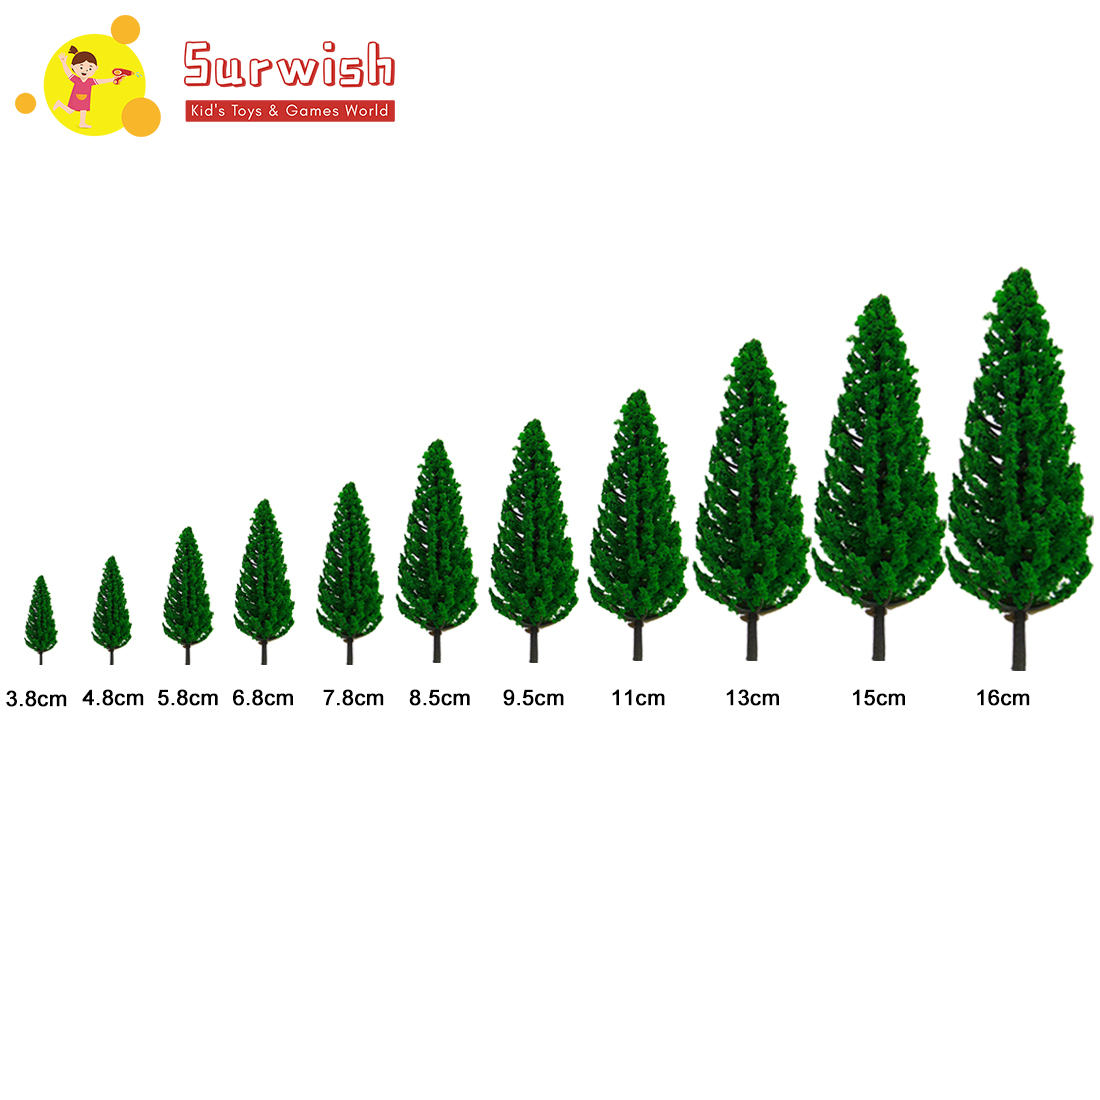 Surwish 20/33/44pcs 3.8-16cm(1.5-6.3inch) Height Pine Tree Model Sand Table Scenery Building Parts For Ho 1:85 Scale Toy Train